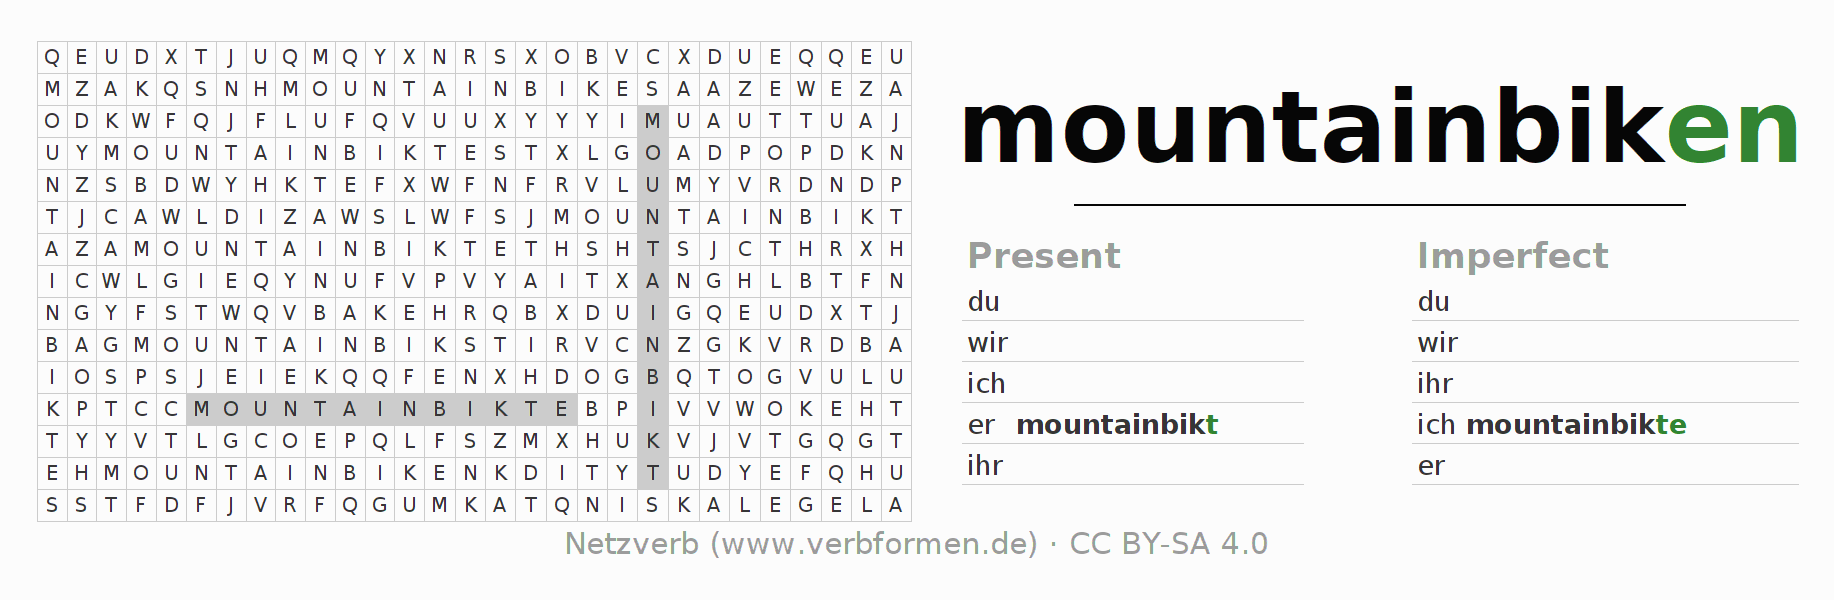 Word search puzzle for the conjugation of the verb mountainbiken